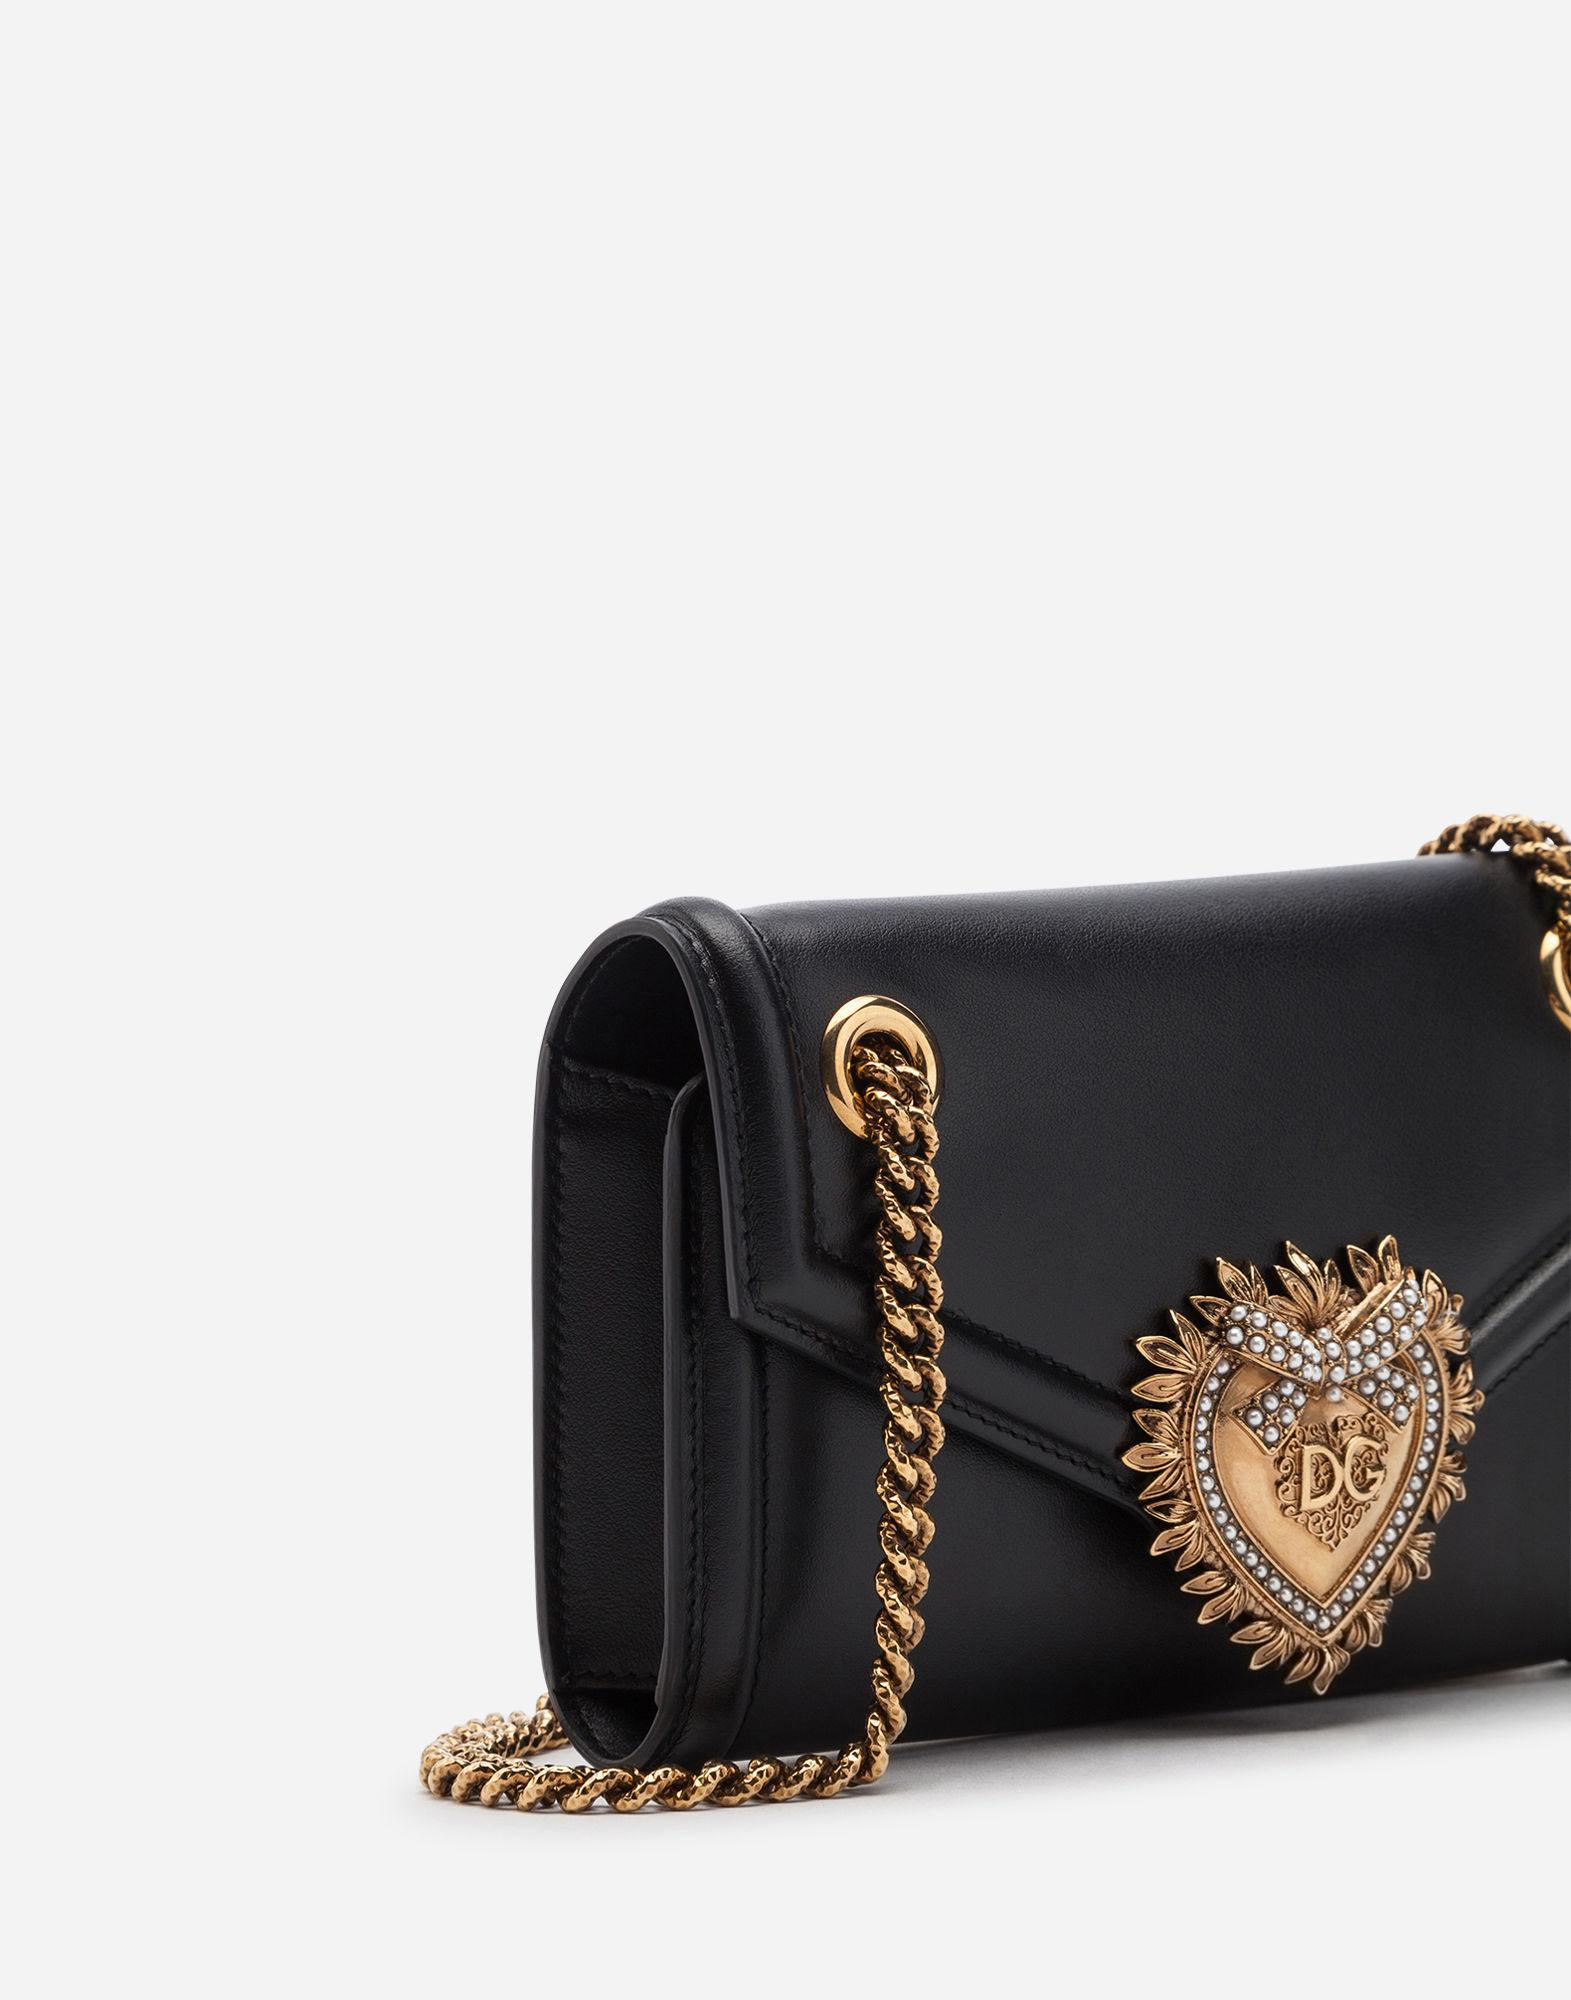 Lyst - Dolce   Gabbana Medium Devotion Shoulder Bag in Black - Save 23% 502d5ef1805d6